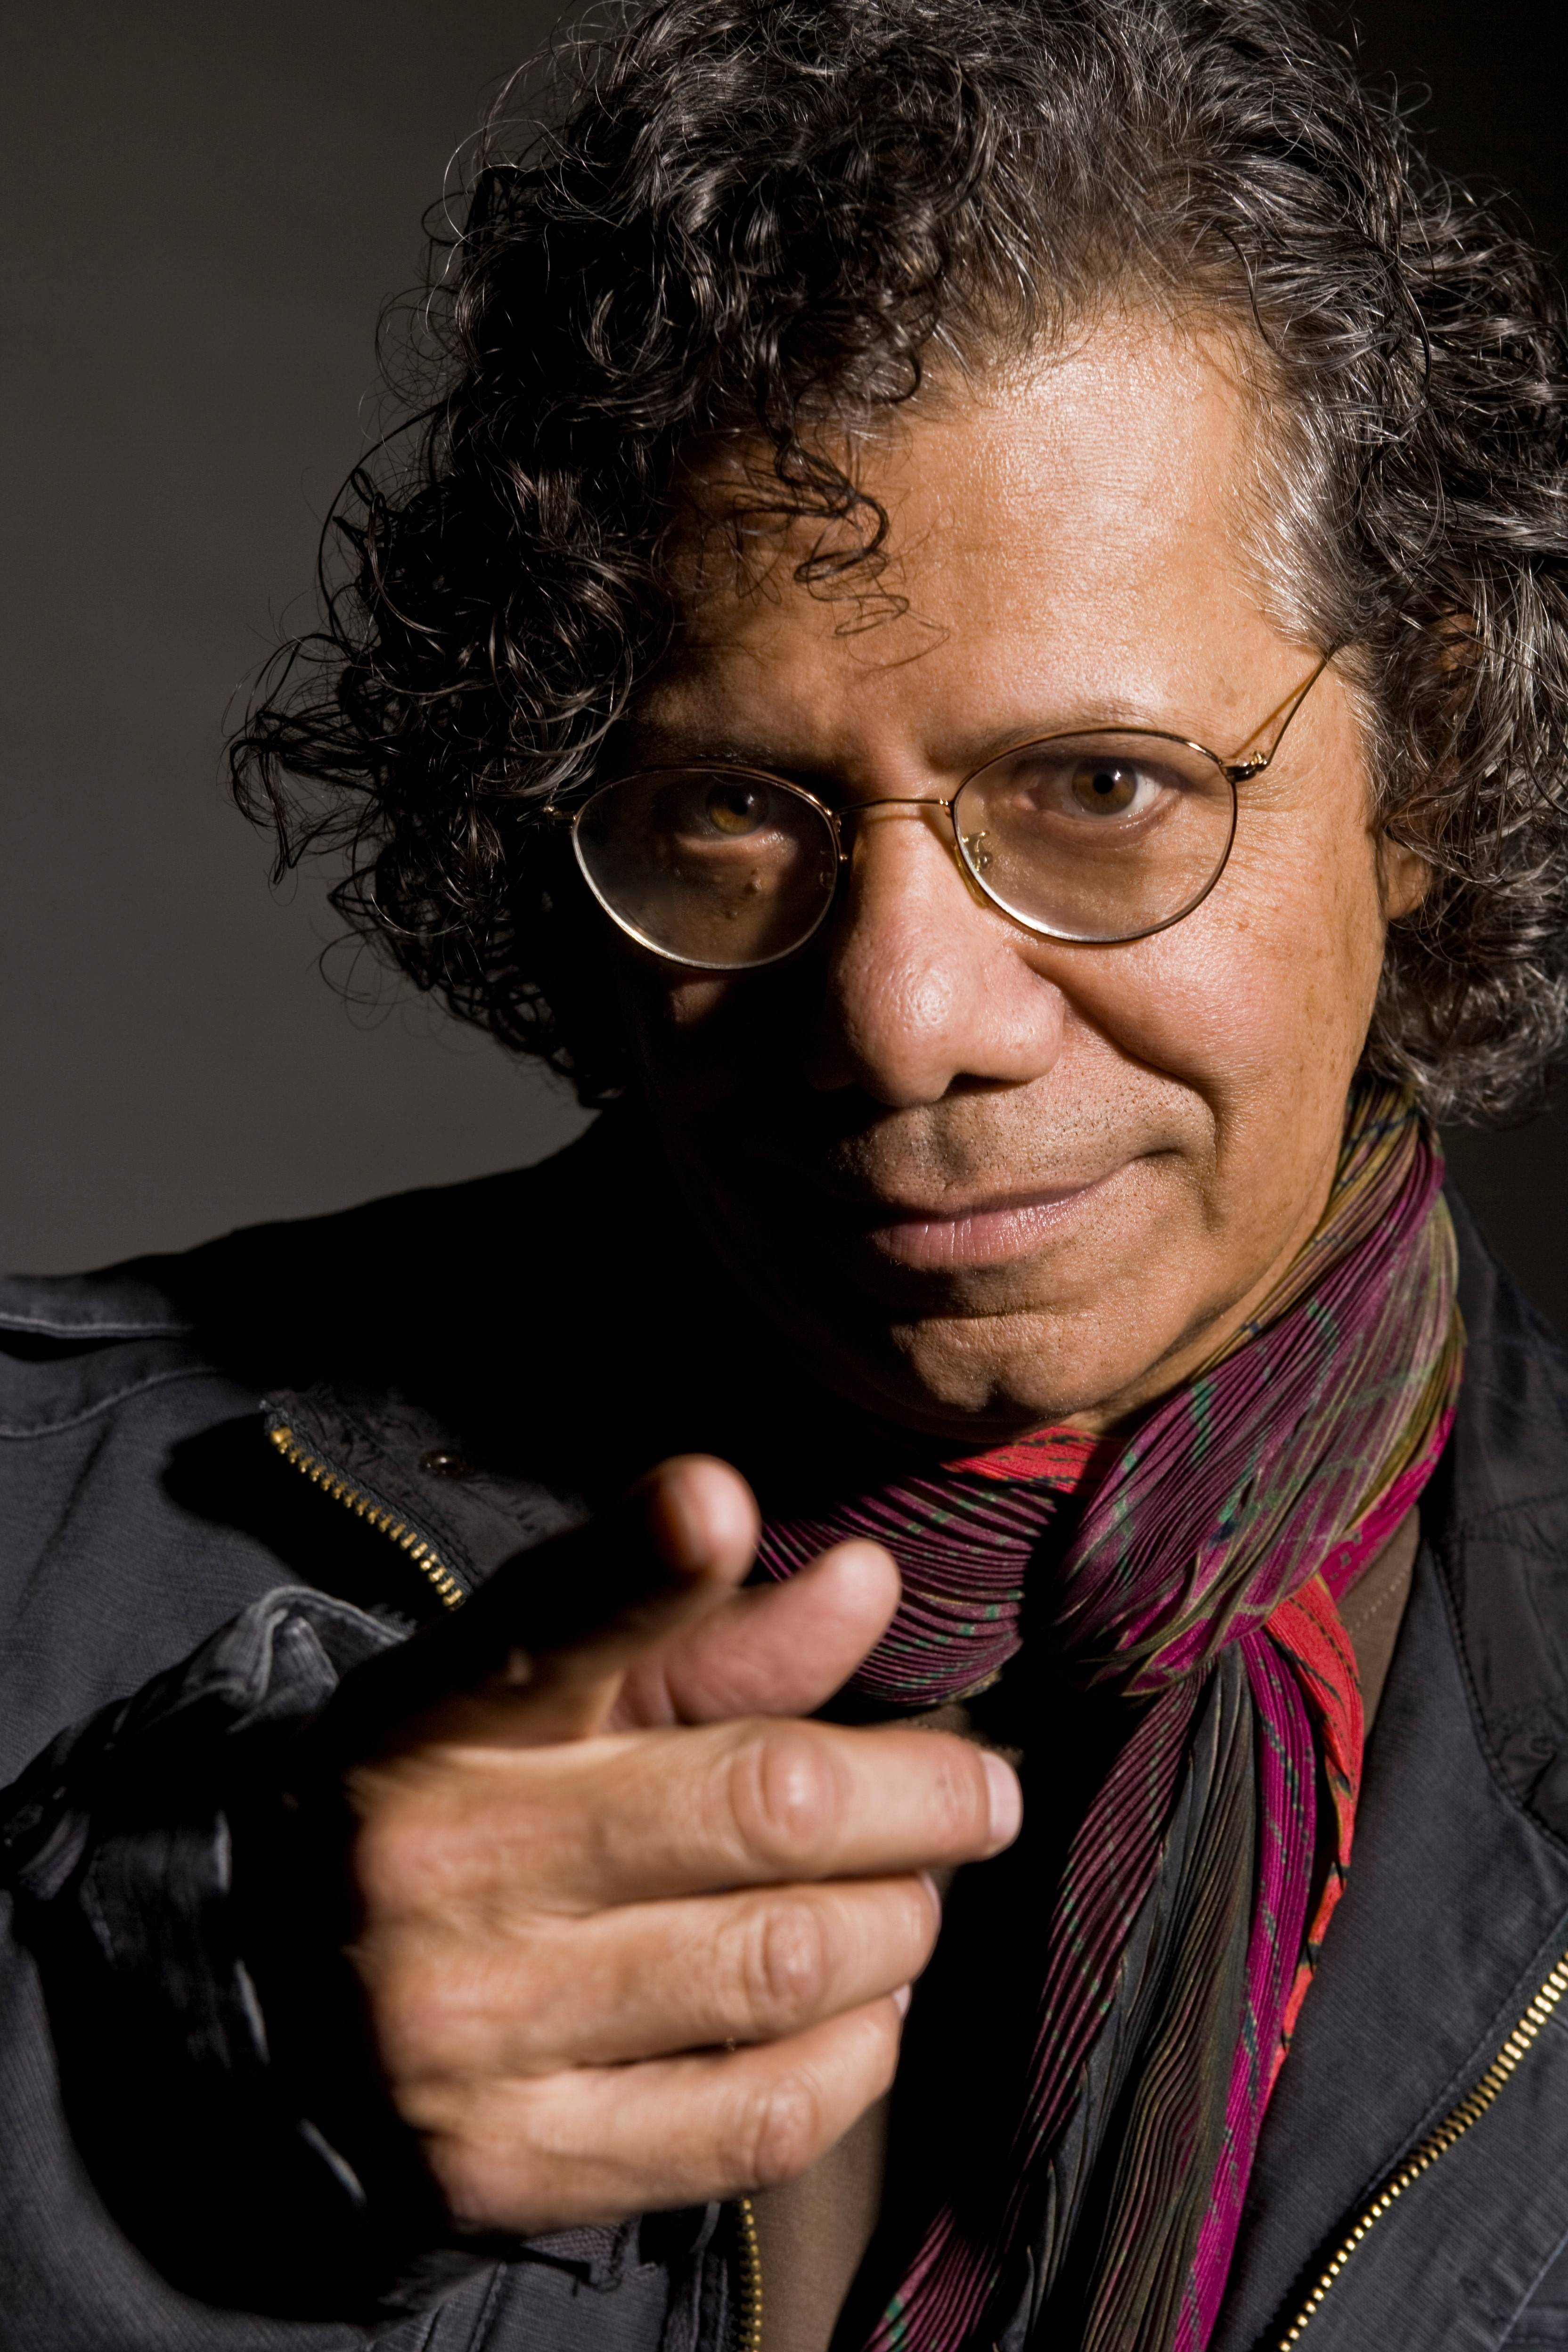 Jazz pianist and composer Chick Corea teams up with Bela Fleck for a concert at the Auditorium Theatre of Roosevelt University in Chicago on Saturday, April 5.